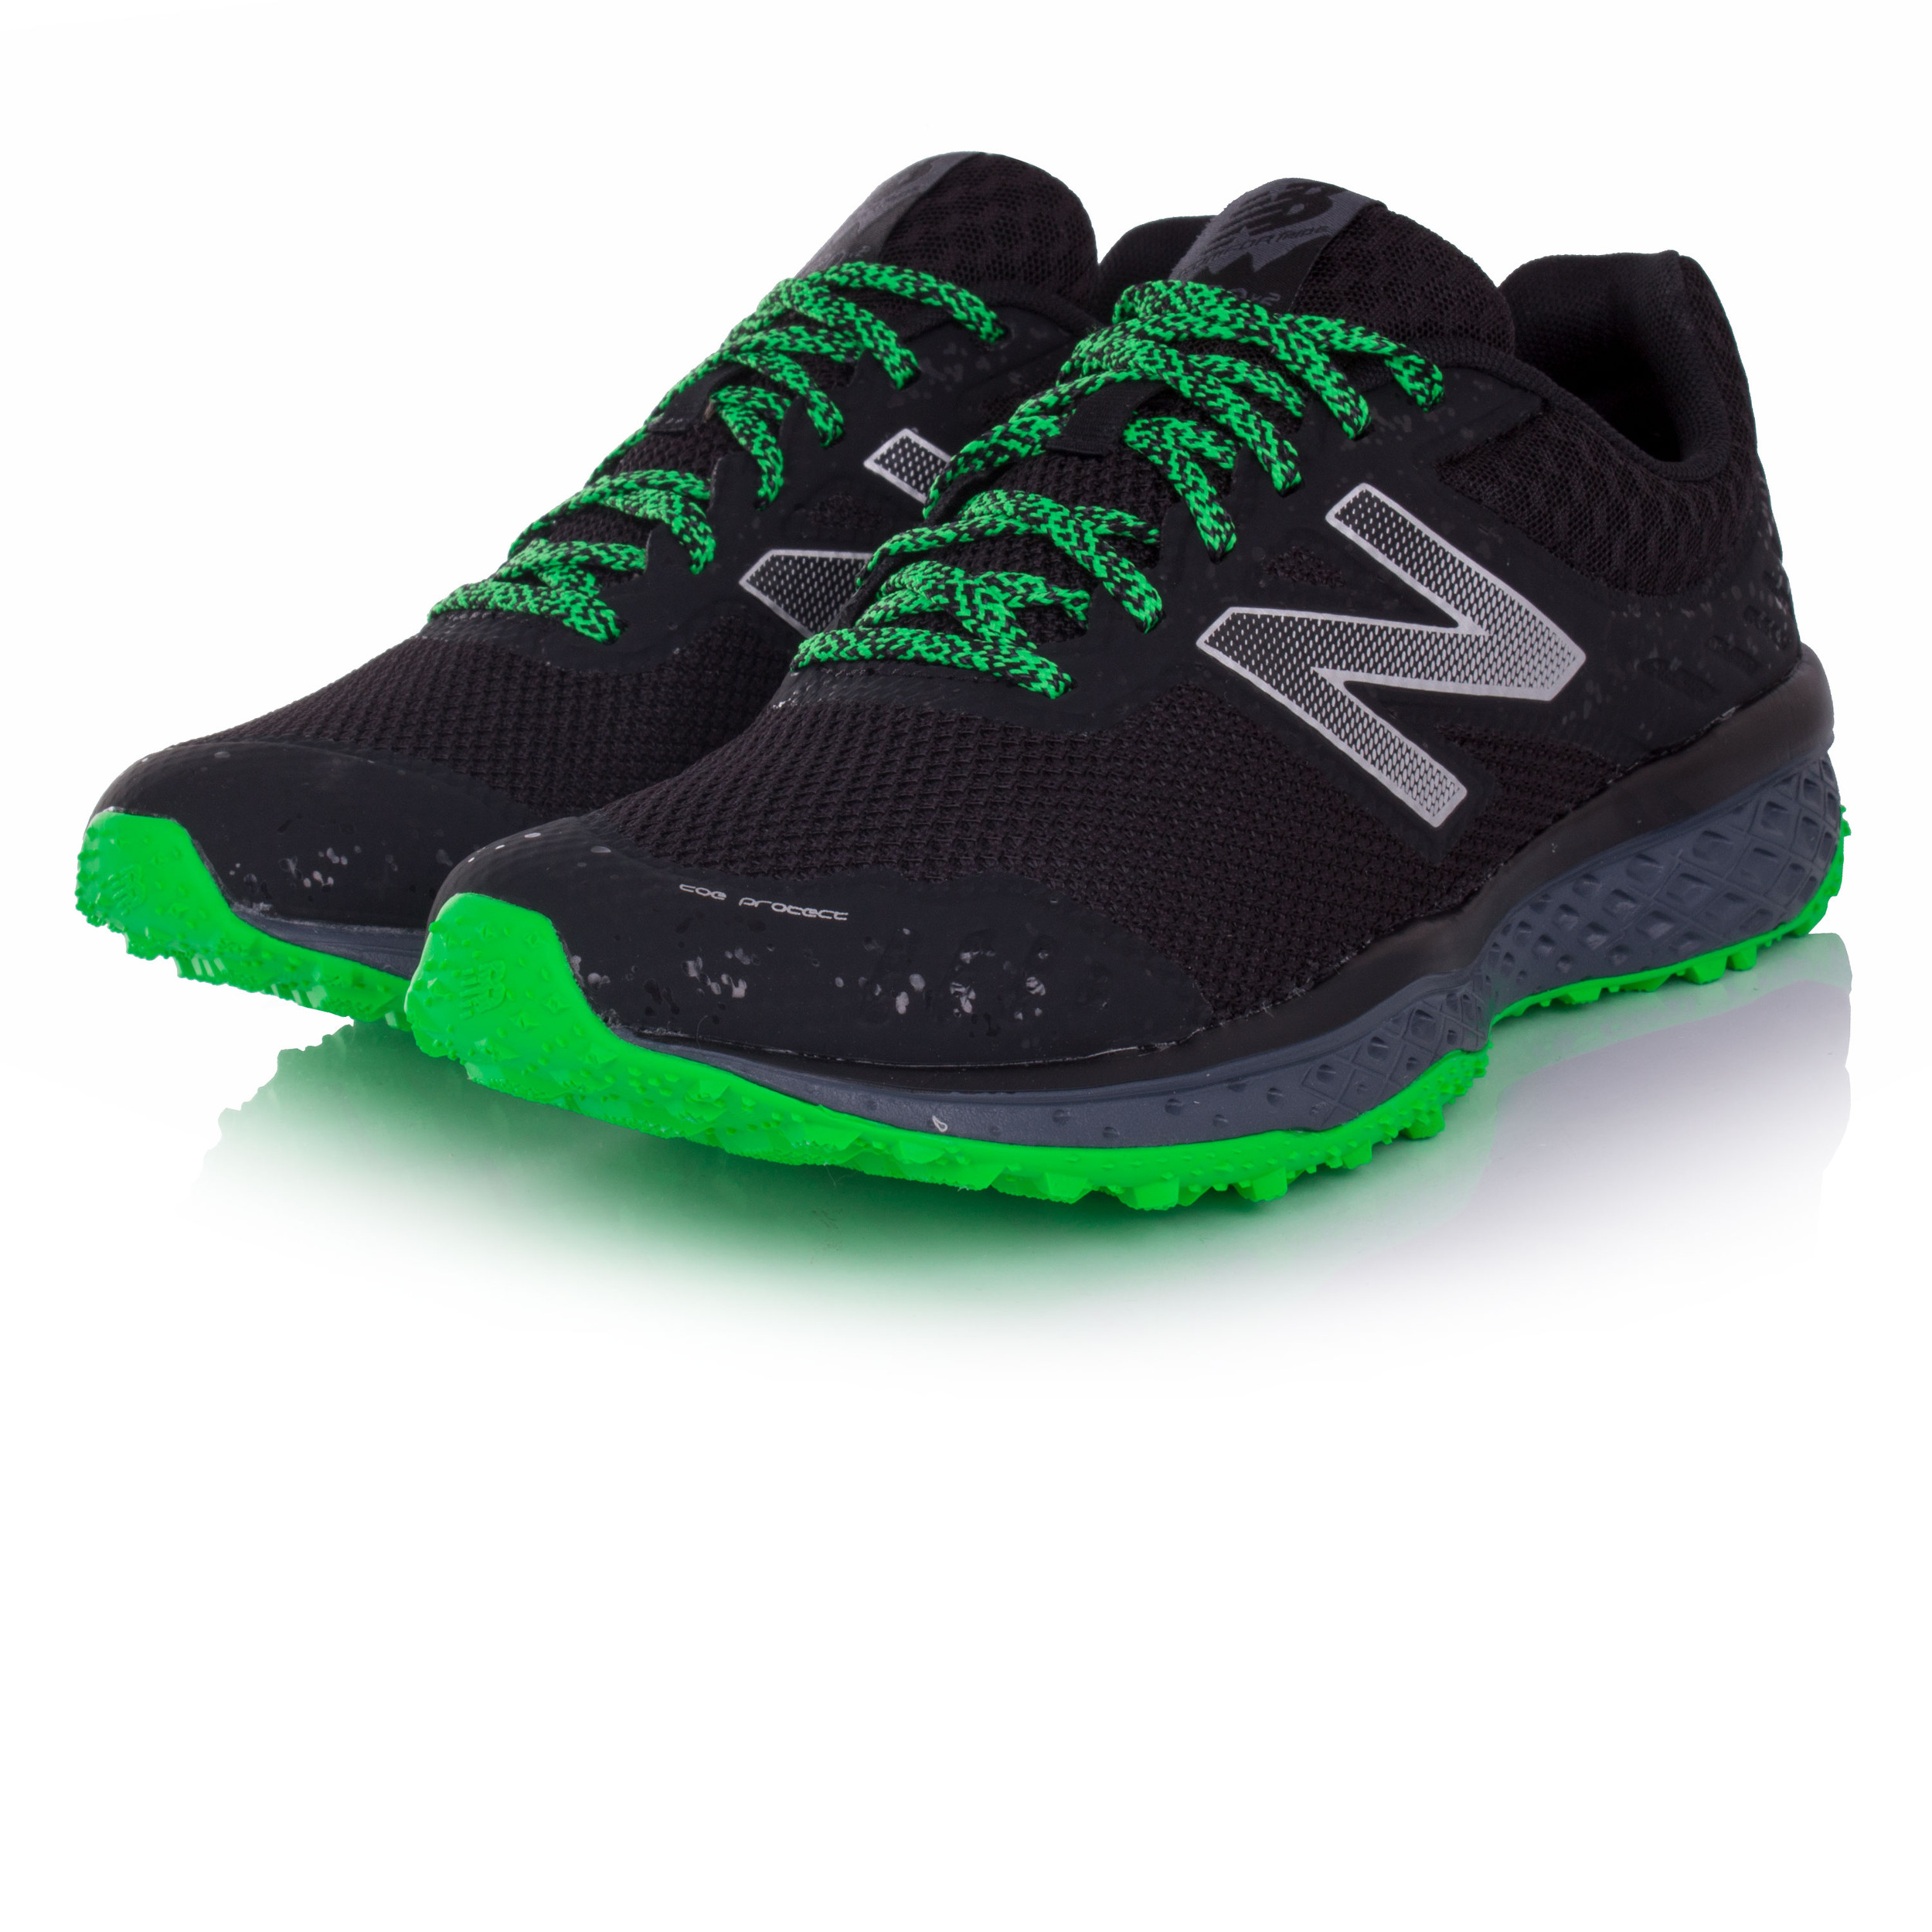 bc46387c4ccb0 New Balance MT620v2 Mens Black Trail Running Sports Shoes Trainers ...